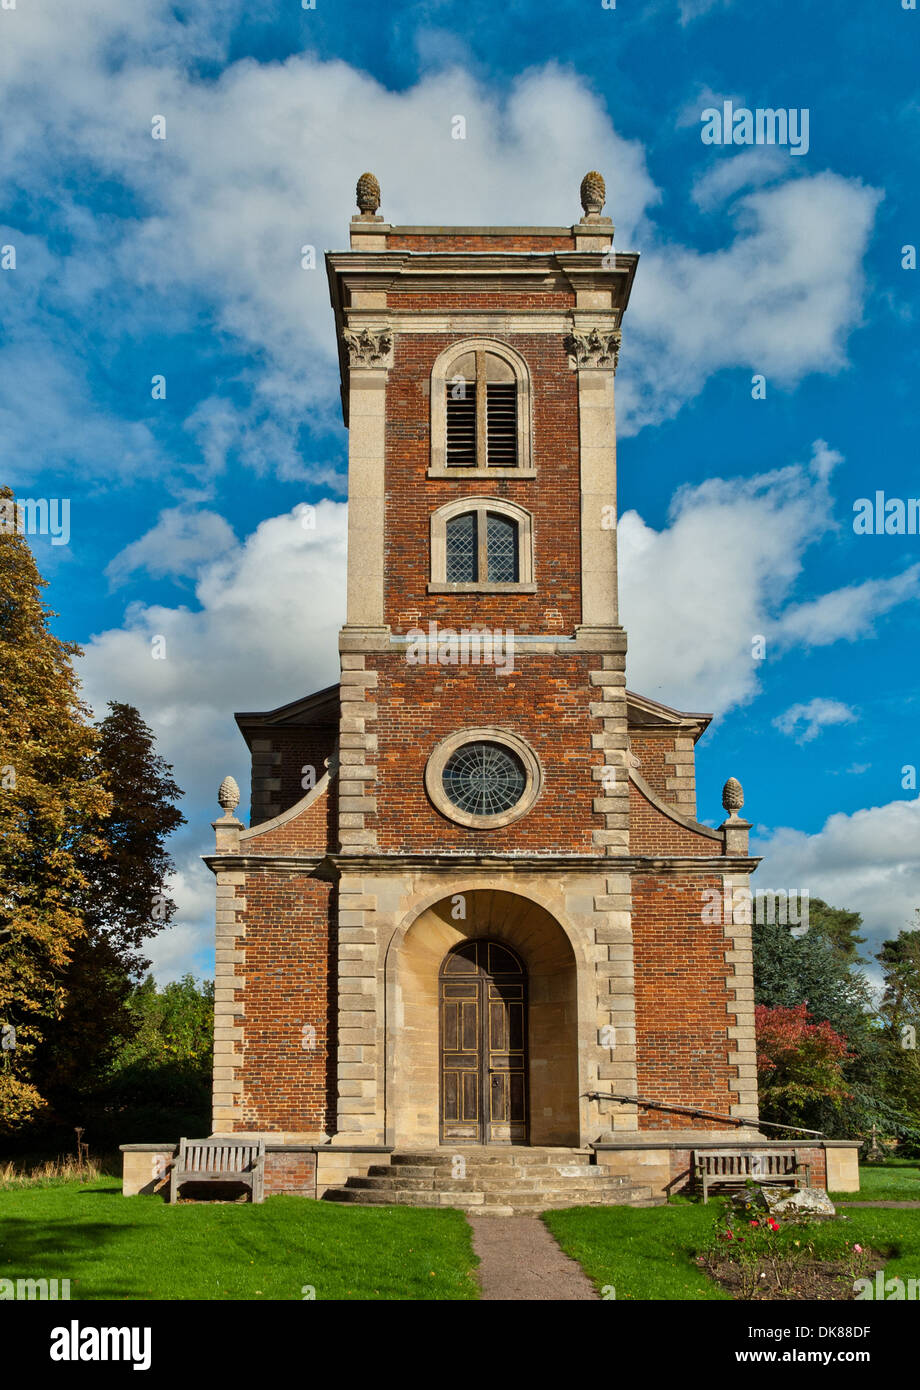 St Mary Magdalene Church, Willen, Milton Keynes; an exterior view - Stock Image